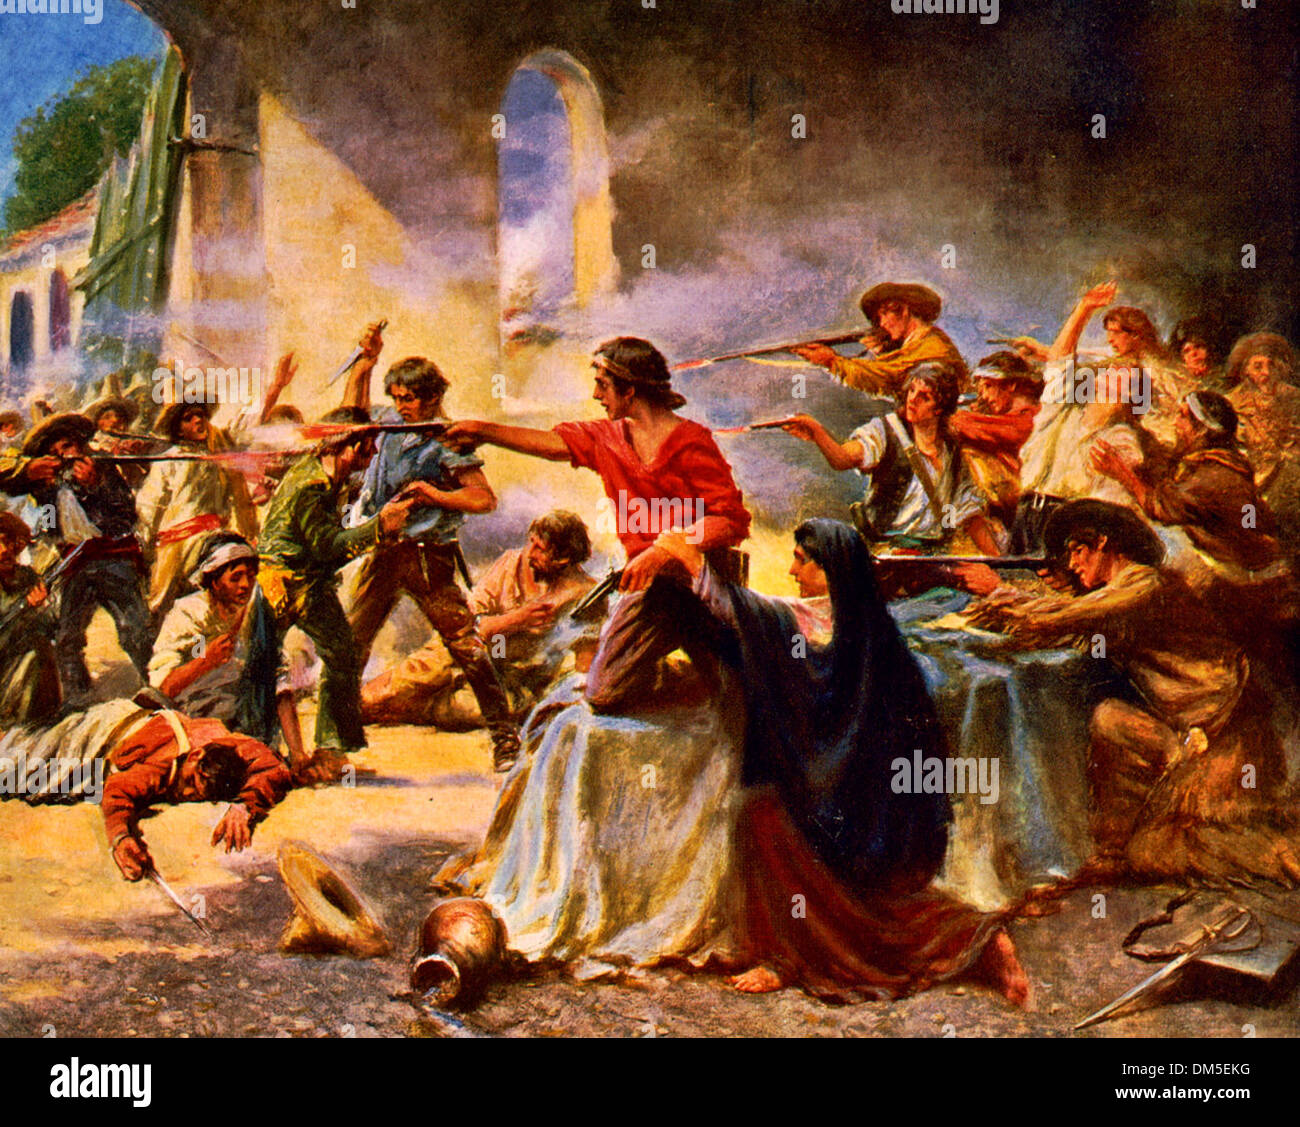 Battle of the Alamo, San Antonio, Texas, 1836 - Stock Image